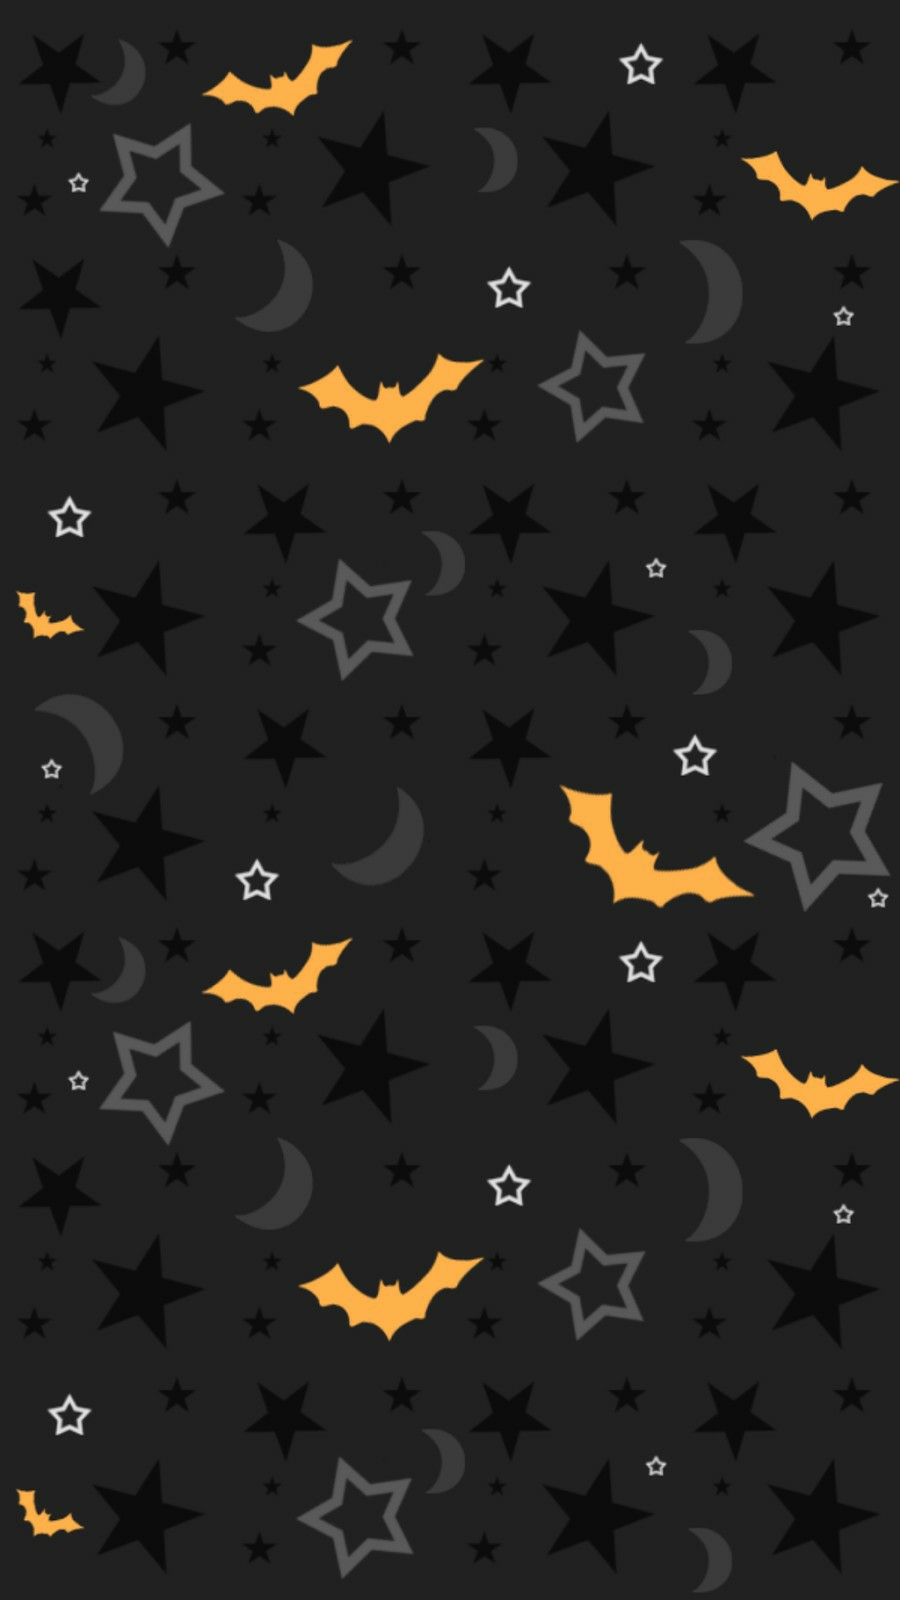 Beautiful Wallpaper Halloween Iphone 6s Plus - Halloween-Bats-iPhone-Wallpaper-iphoneswallpapers_com  Photograph_613495.jpg